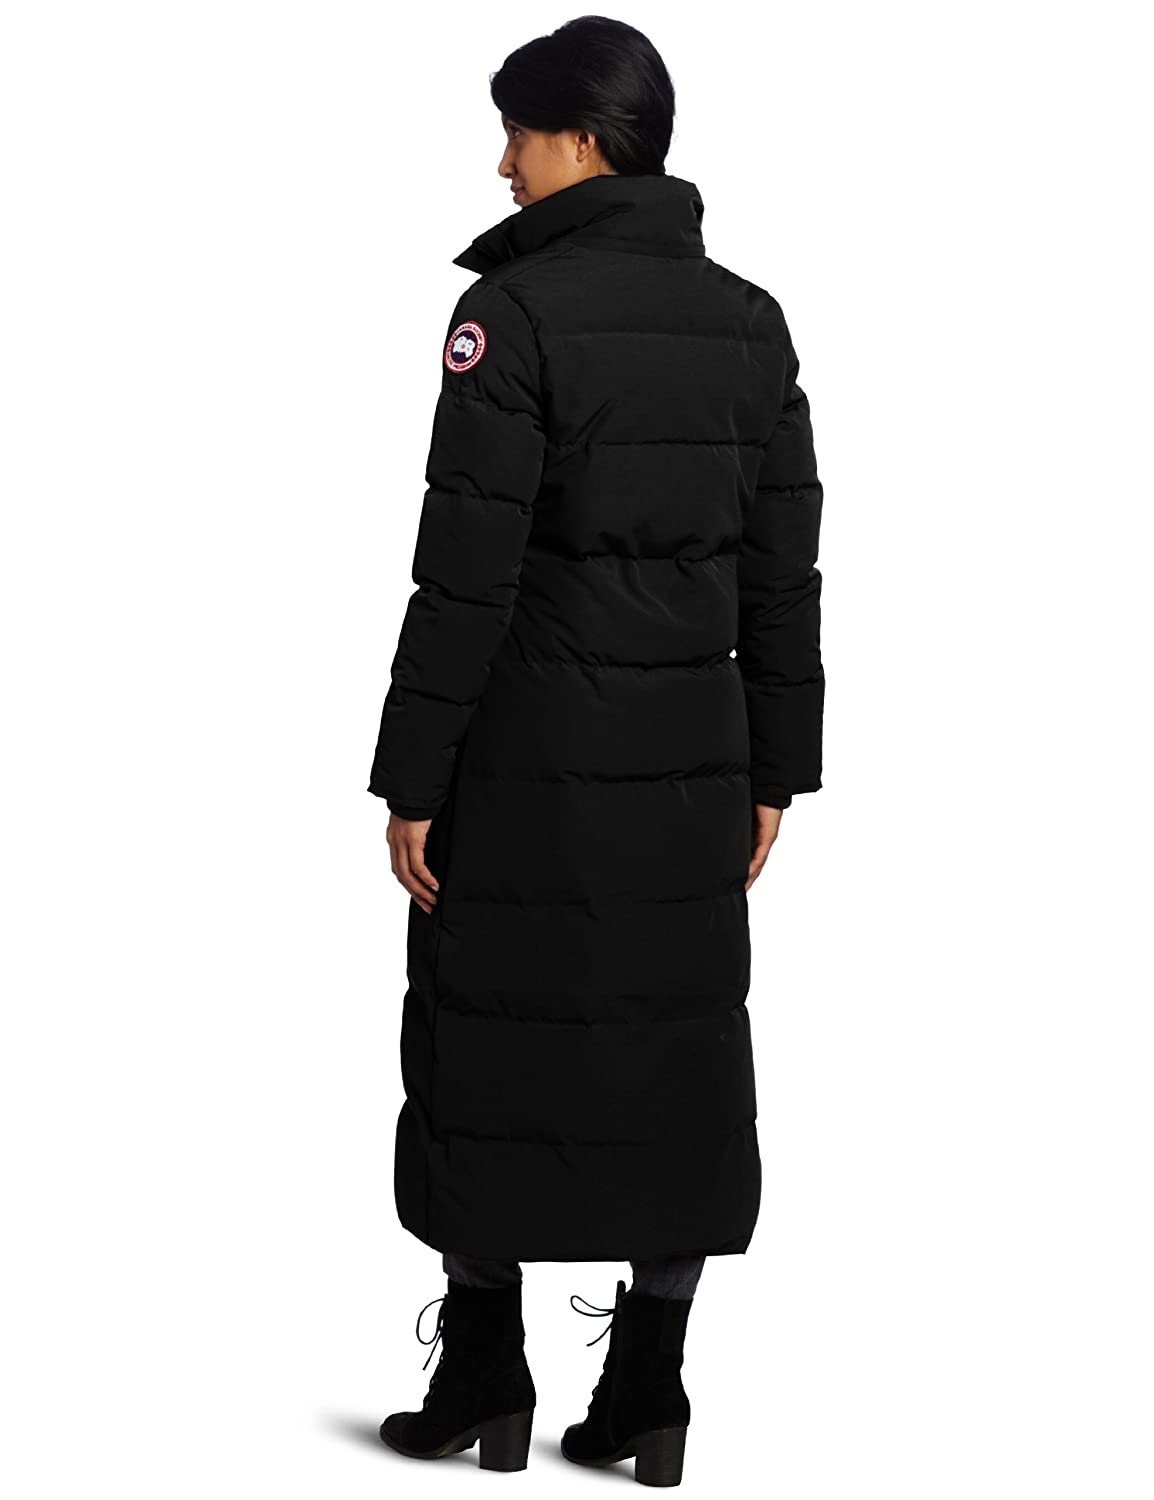 Amazon.com: Canada Goose Women's Mystique, Black, Medium: Sports & Outdoors